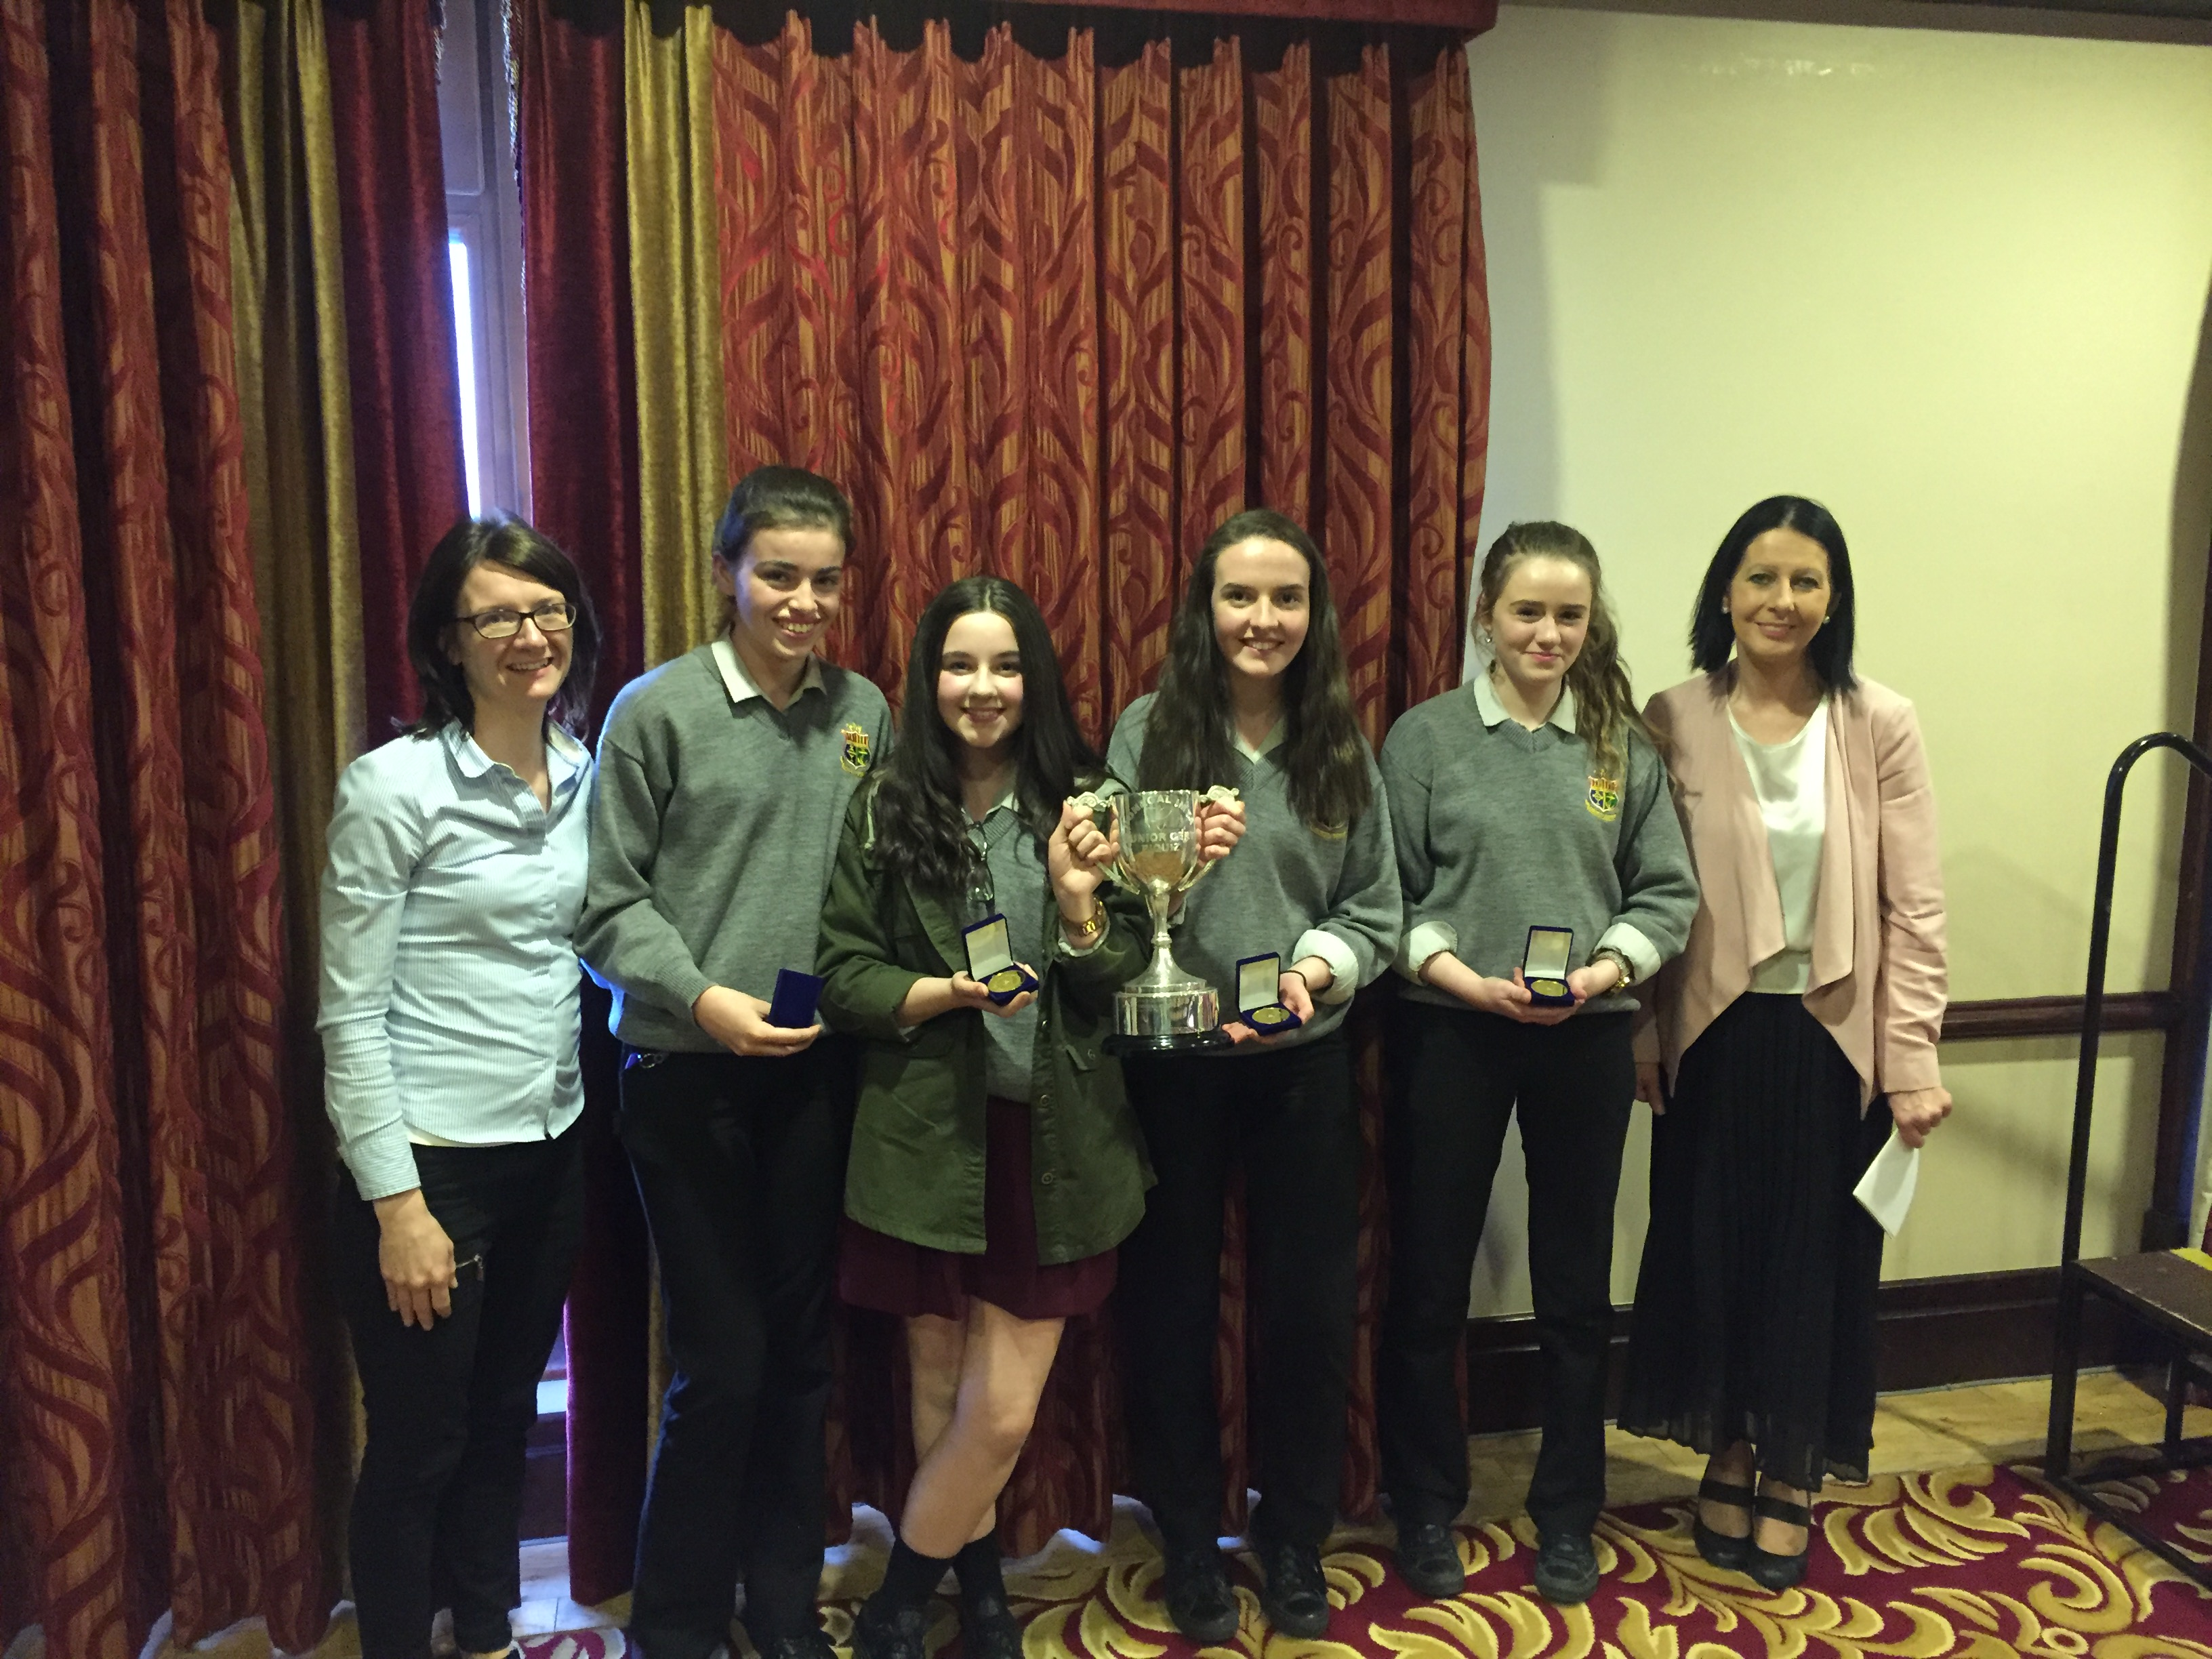 Donegal Winners 2017: St. Columba's College, Stranorlar